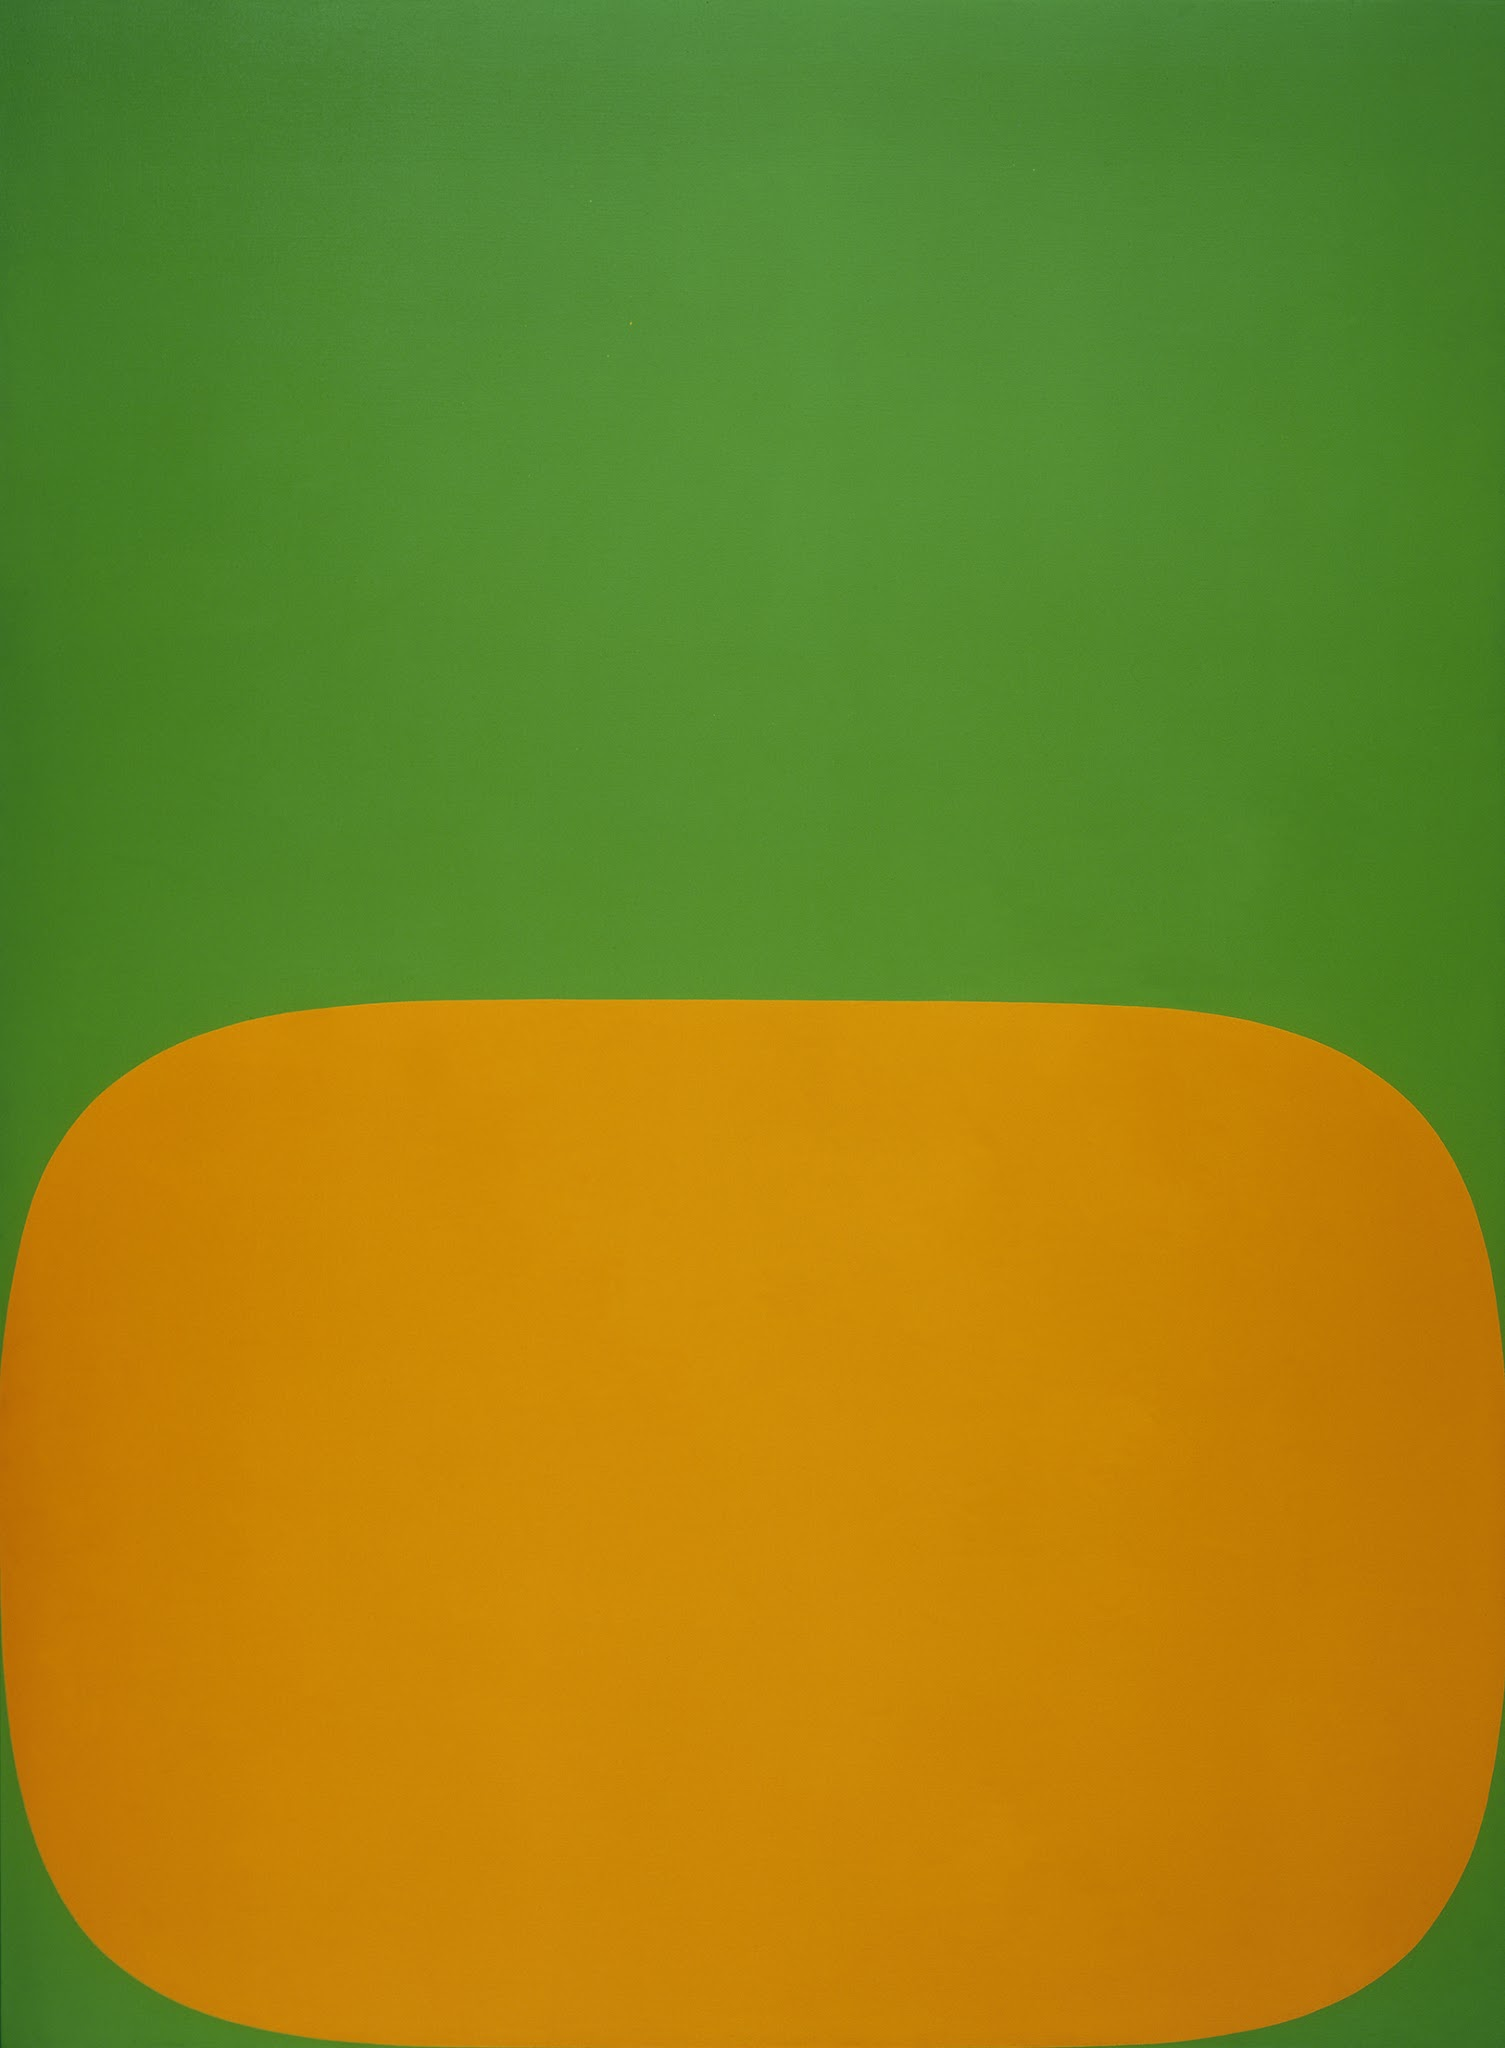 Modernism from the National Gallery of Art @ De Young Museum, SF: Kelly_Orange Green.jpg